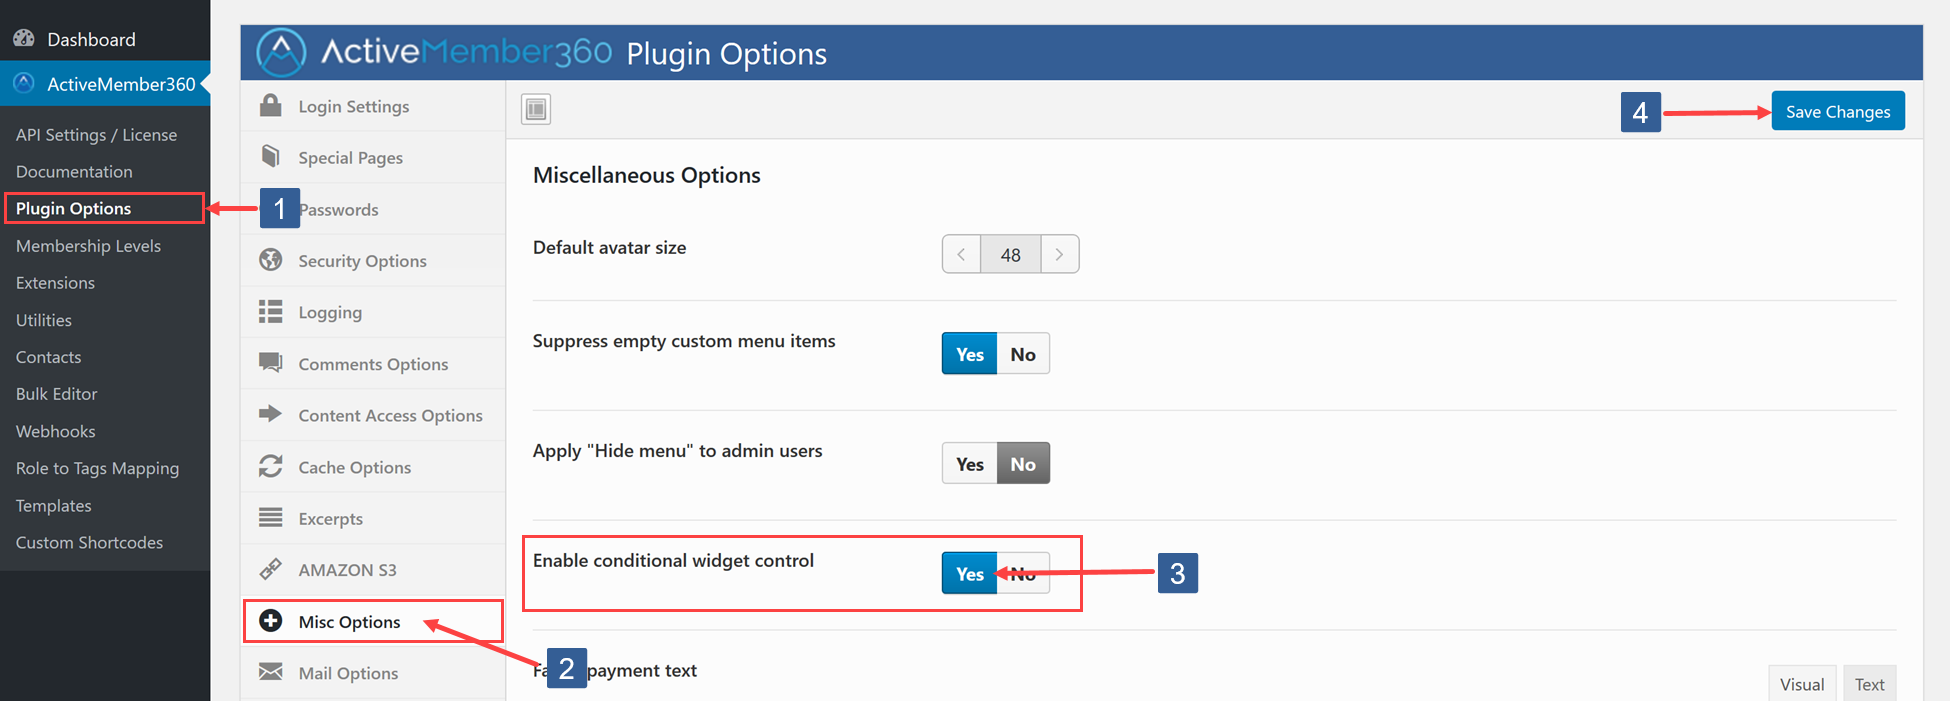 Steps to enable Widget Control